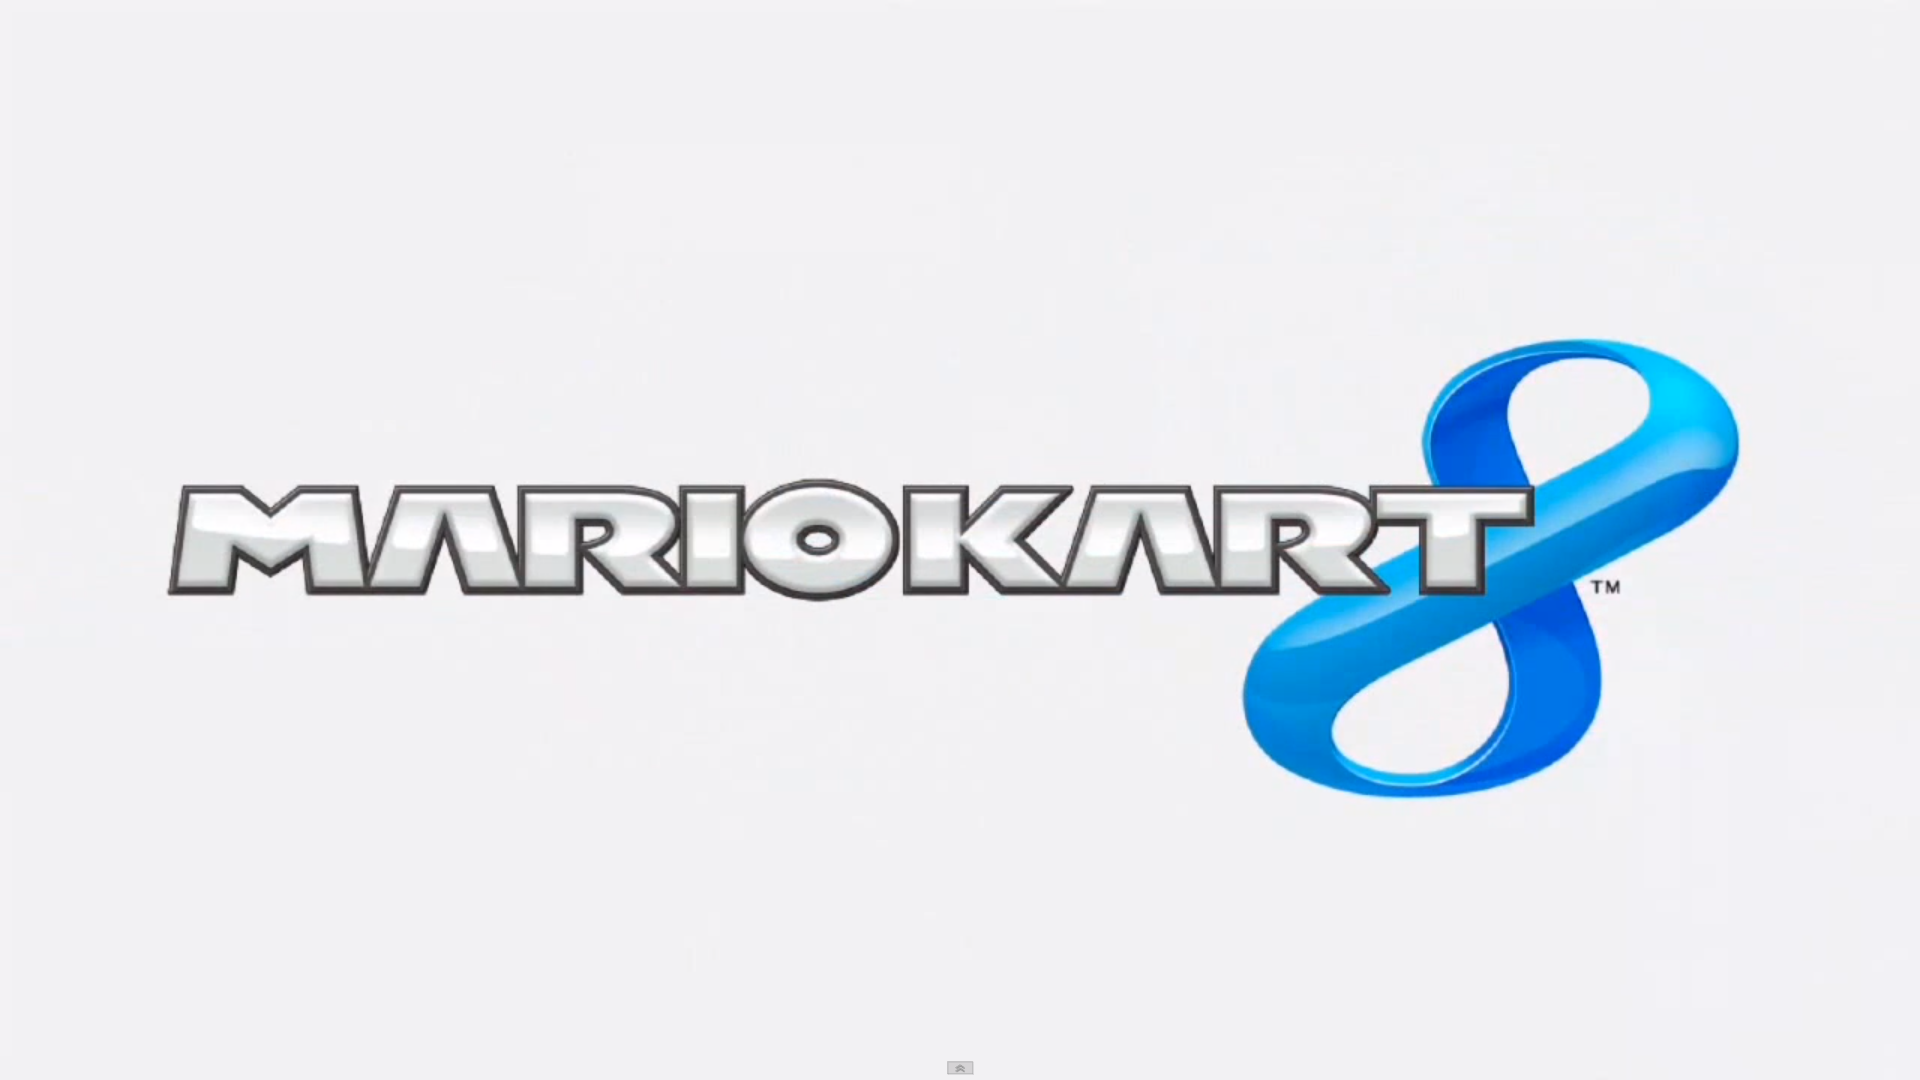 Nintendo PR: Nintendo Adds Three Mercedes-Benz Cars and Updates to Mario Kart 8